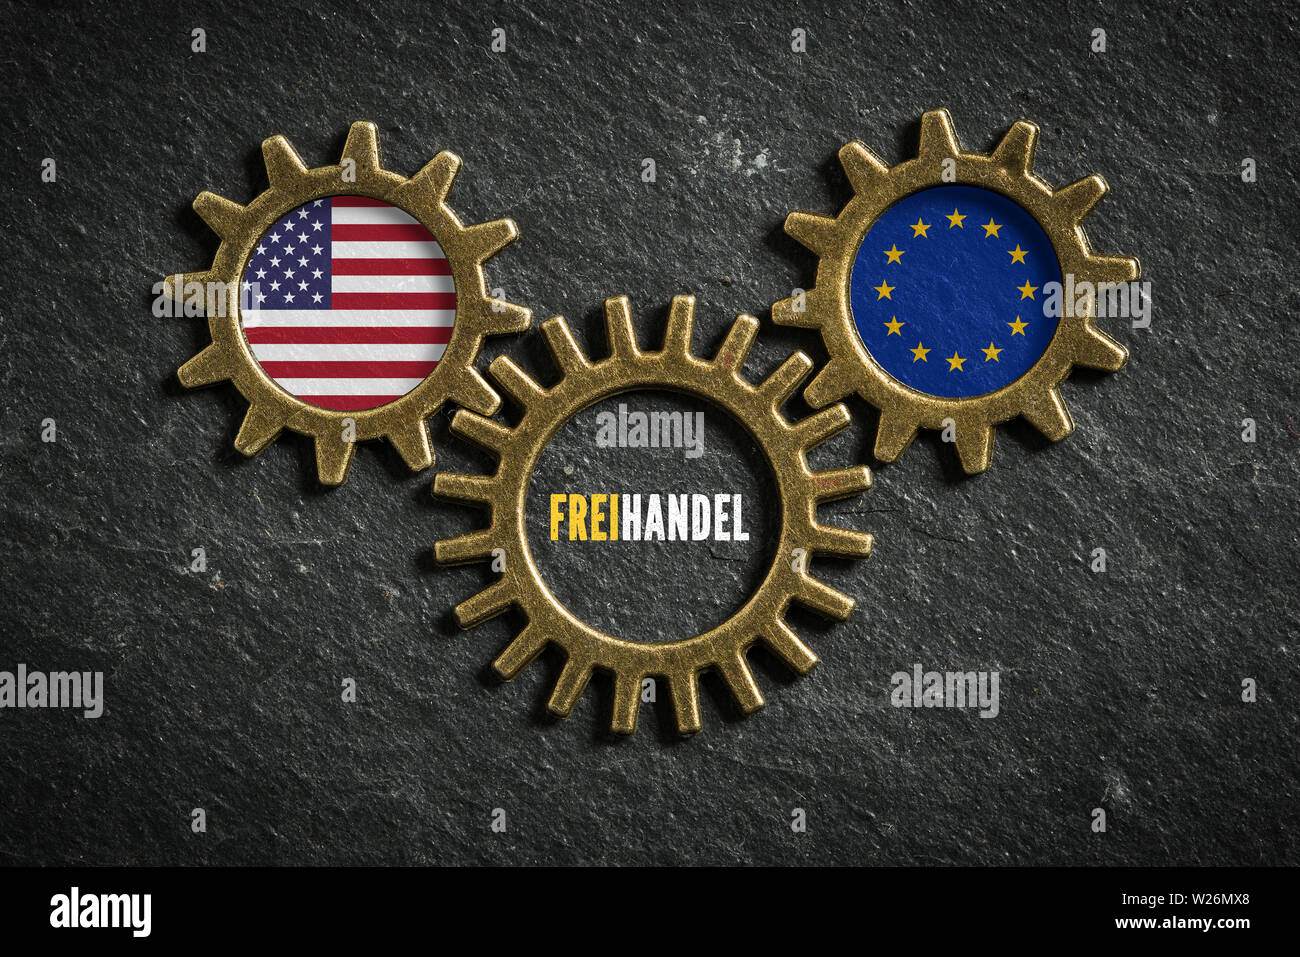 three cogwheels on slate background with the flags of USA and the EU and the word 'free trade' in German in the middle - Stock Image